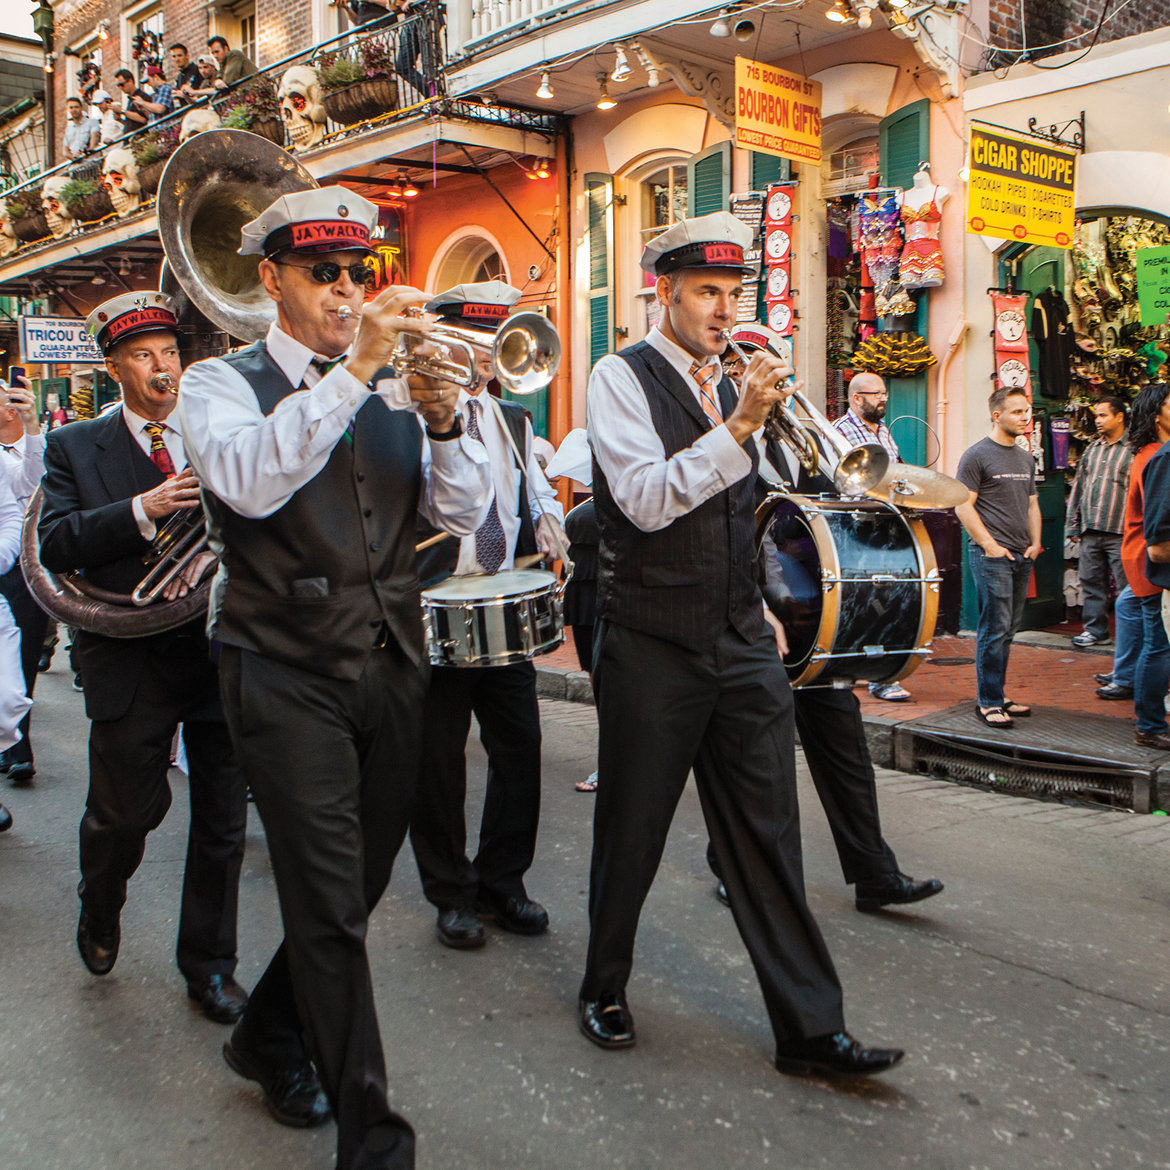 new orleans marching band